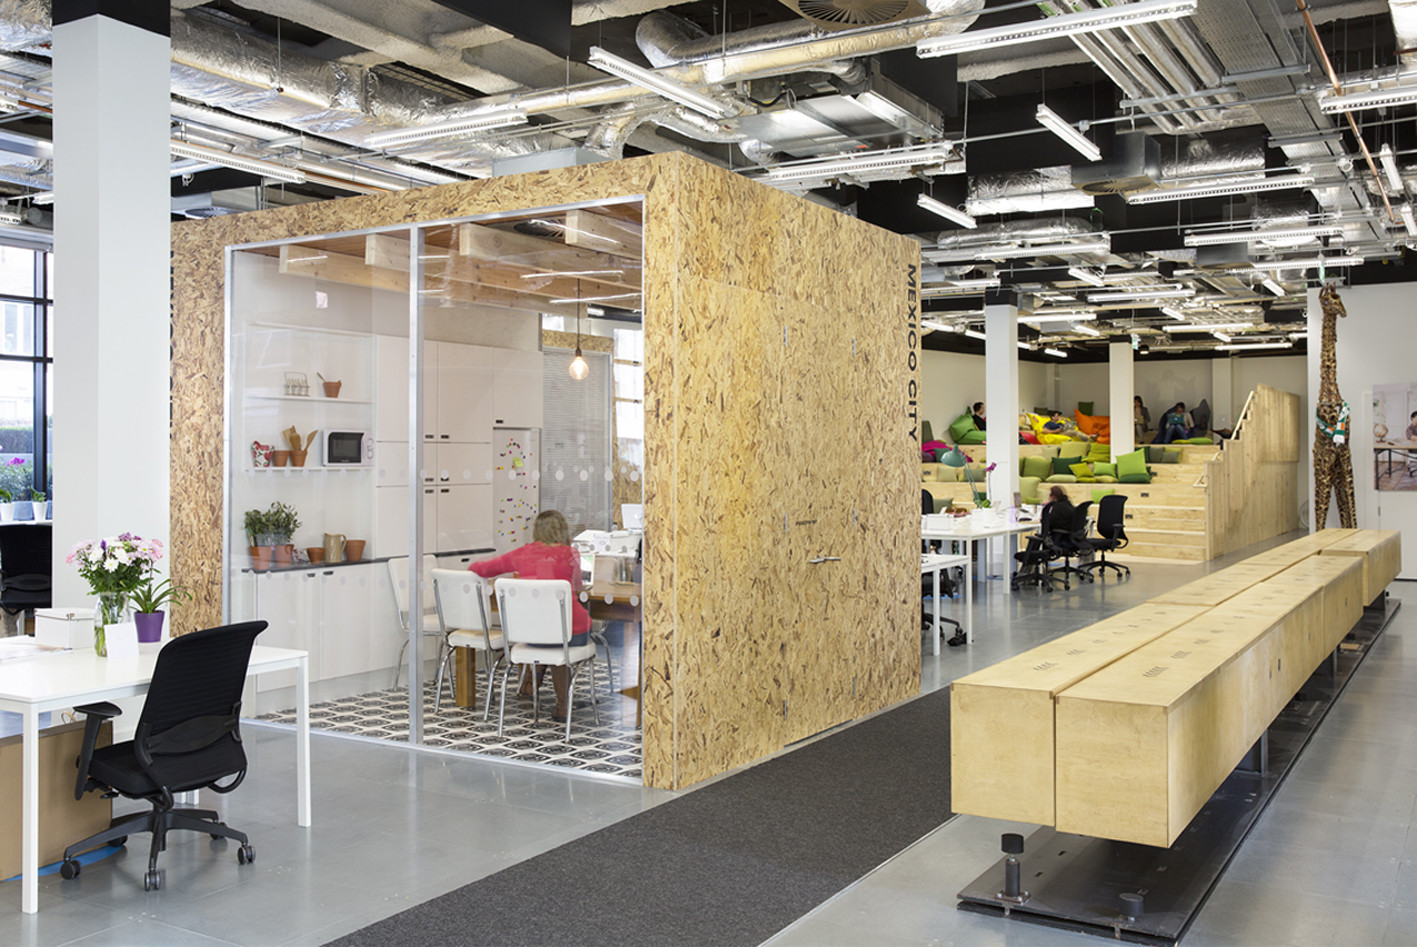 Airbnb's European Operations Hub in Dublin. Image © Ed Reeve